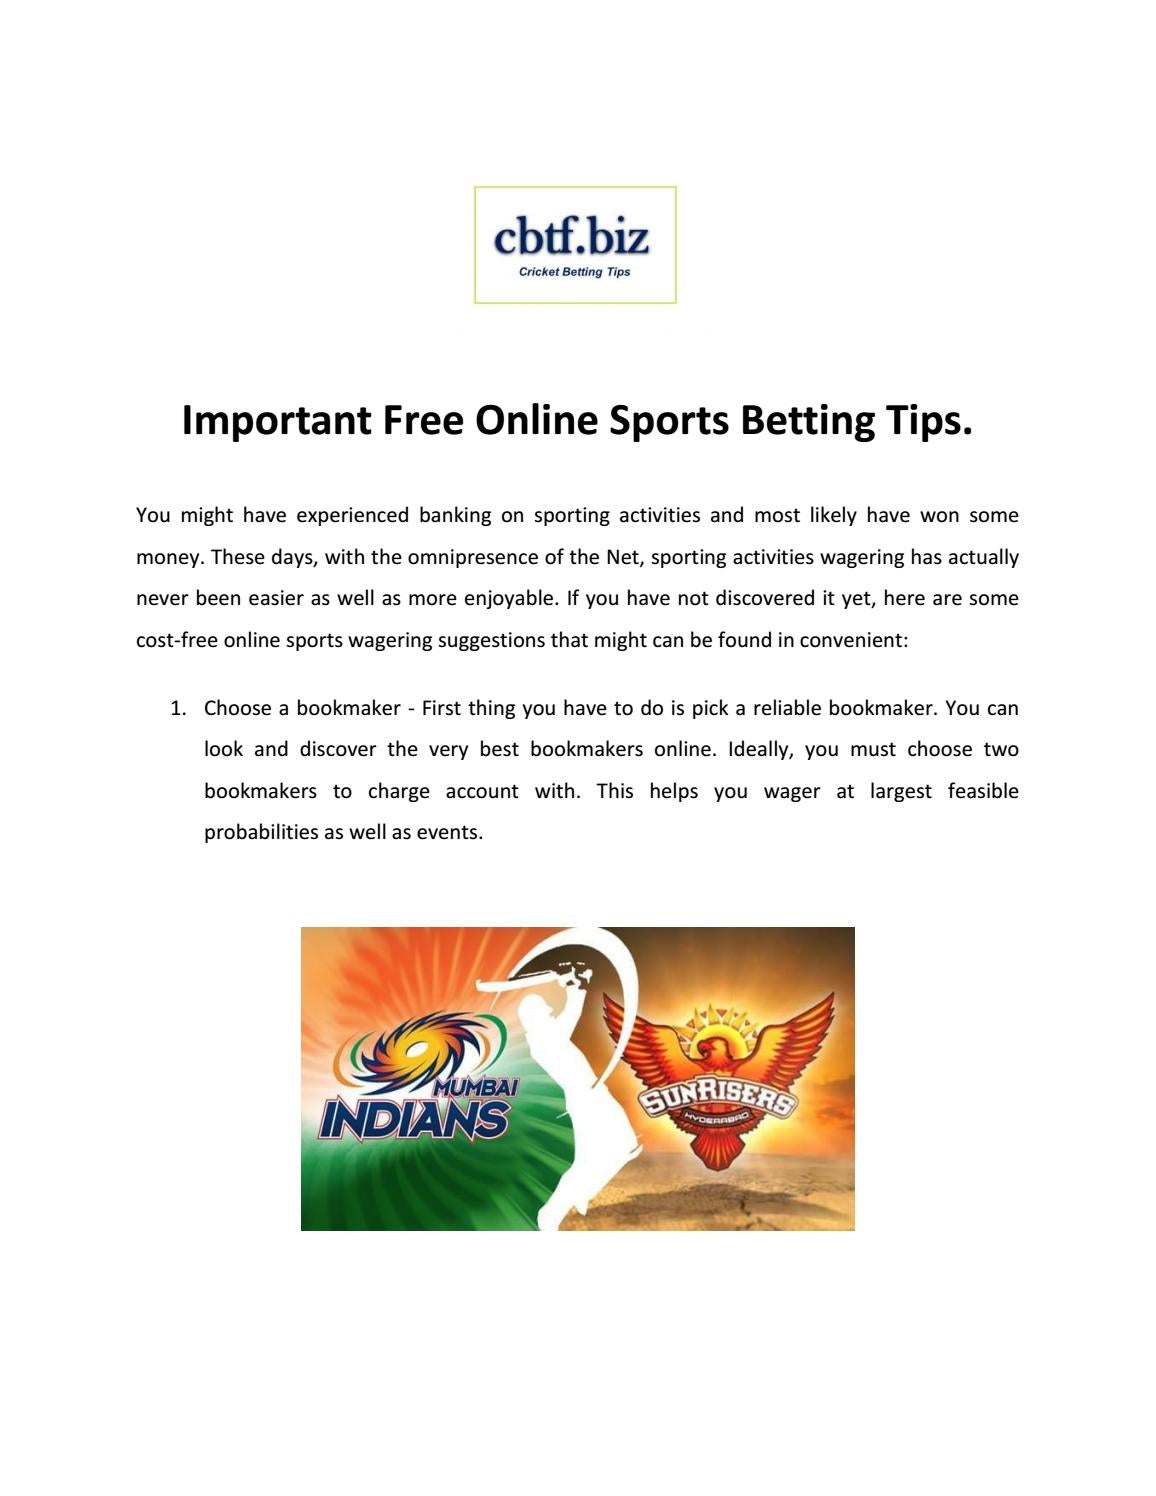 Ipl betting tips page online betting vegas nfl